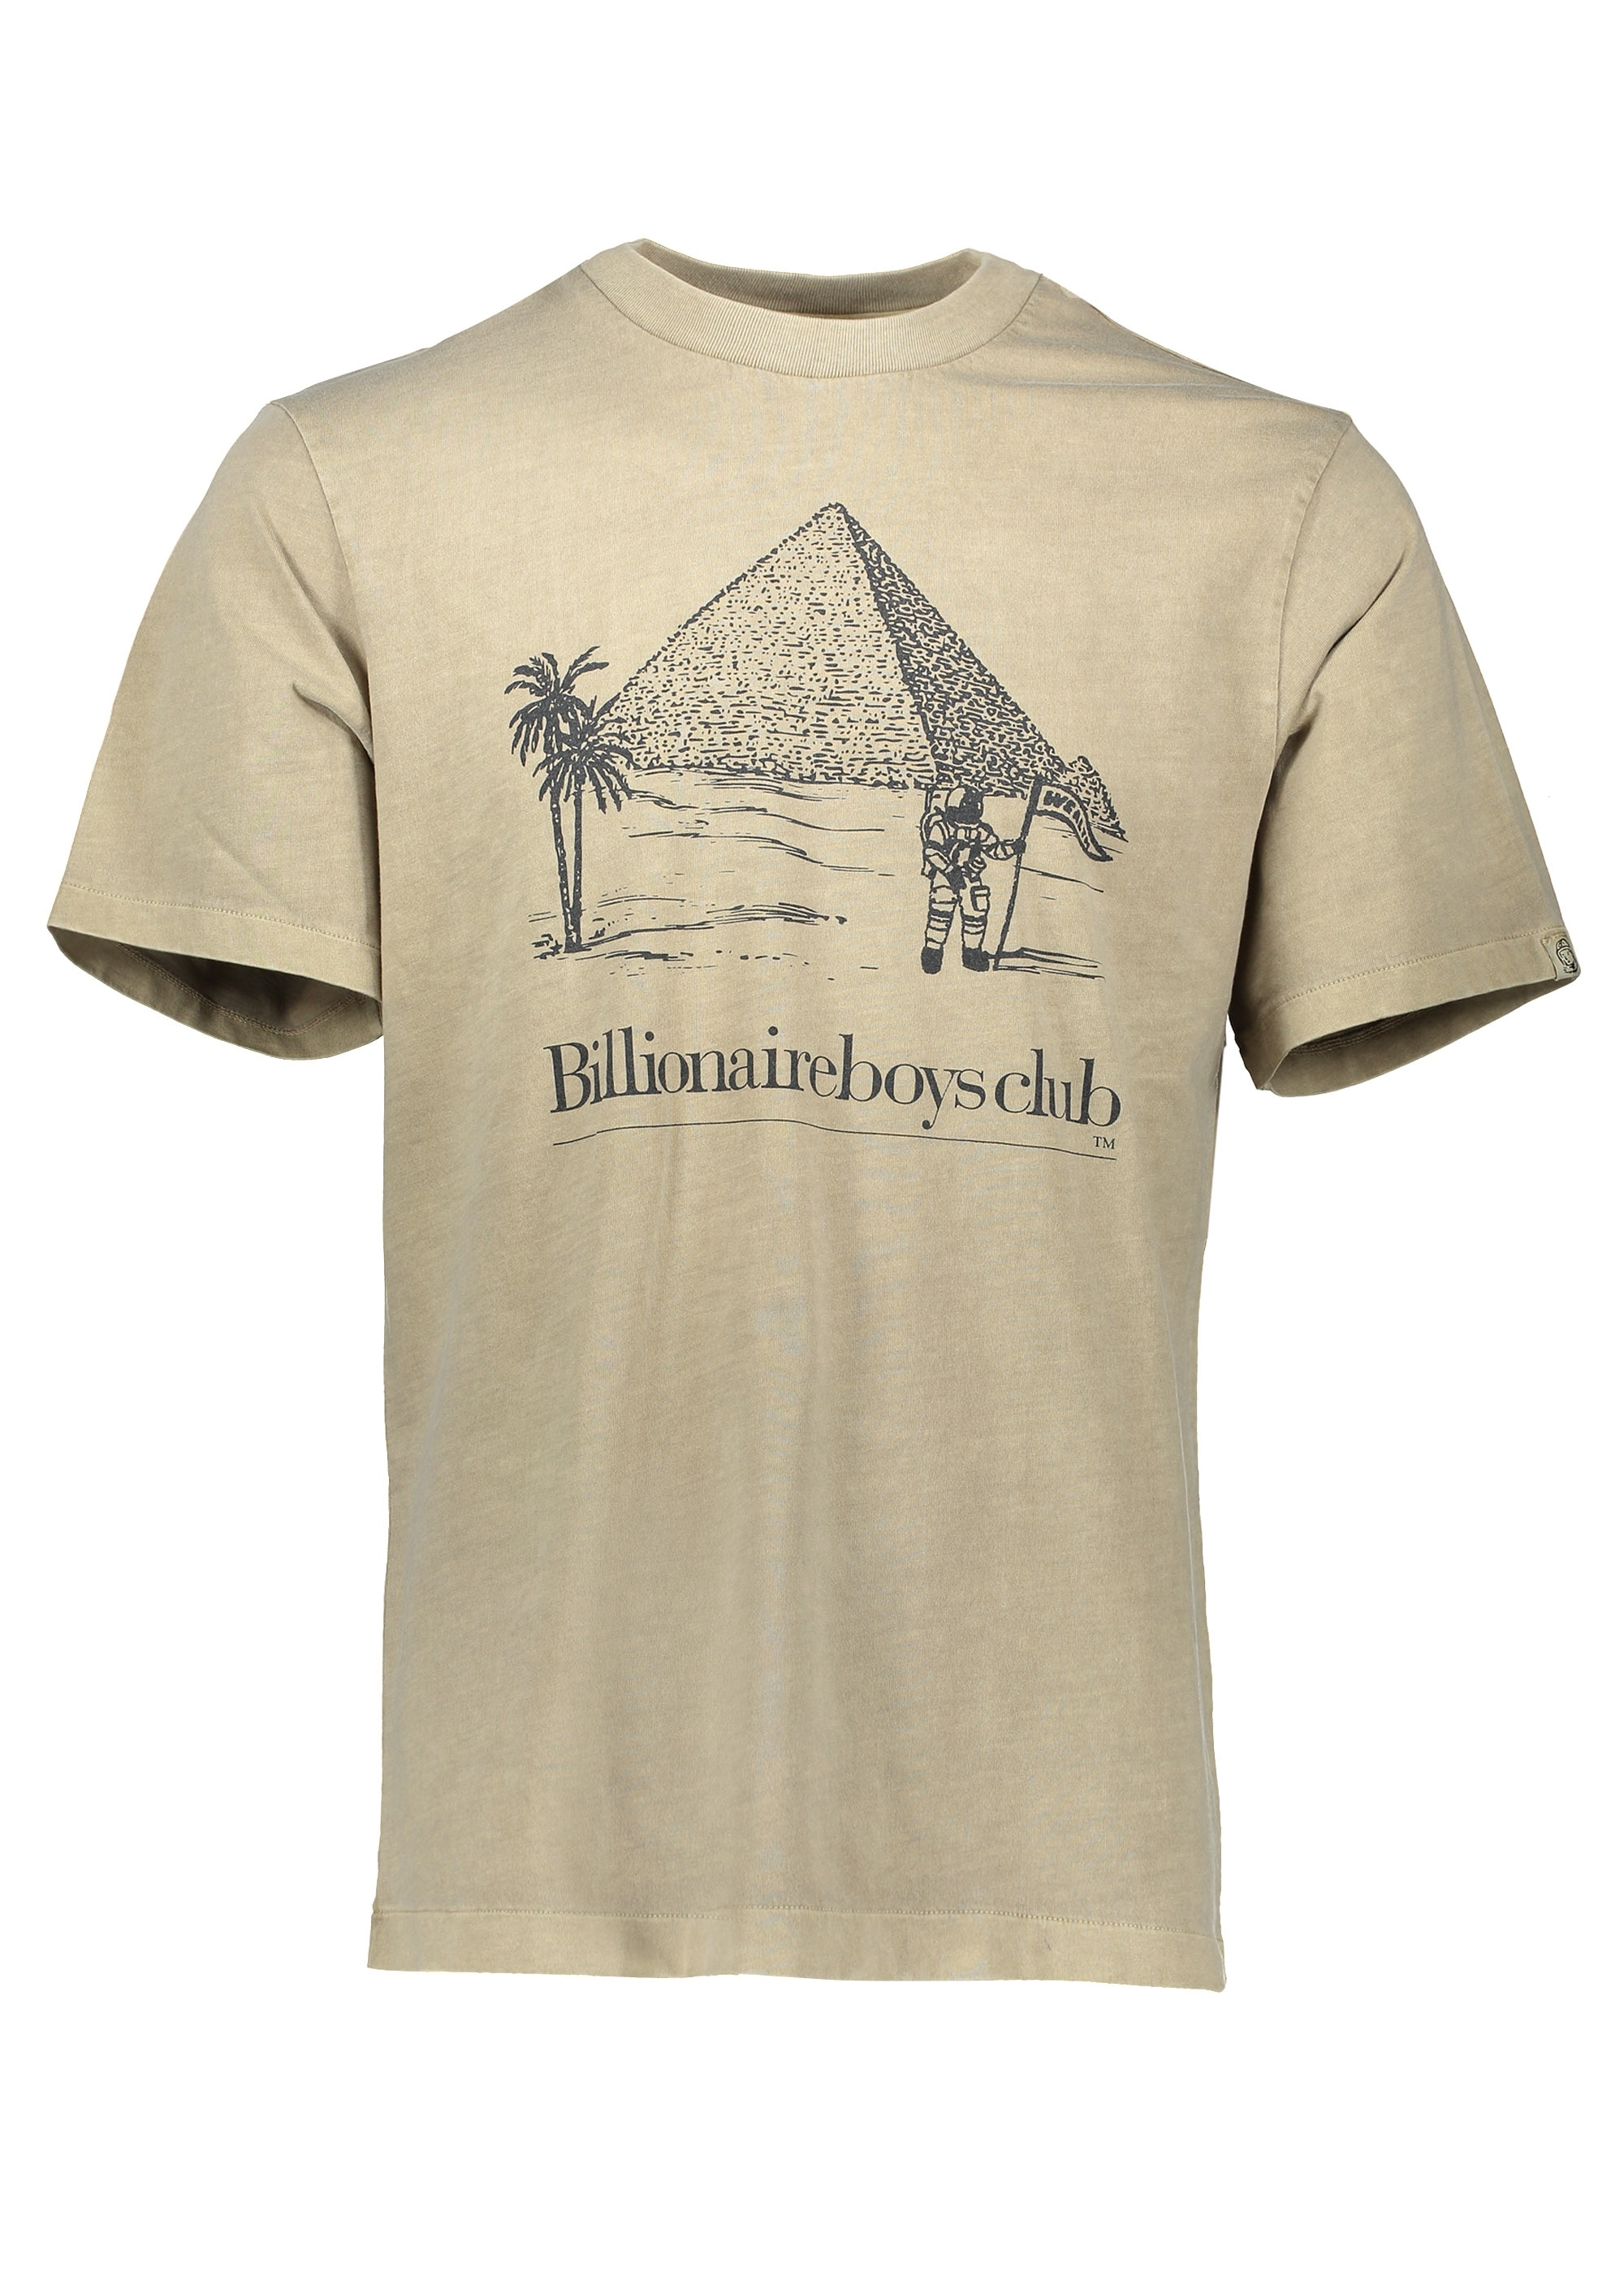 Billionaire Boys Club Pyramid T-Shirt - Sand - Triads Mens from ... 6edfb9ce81b